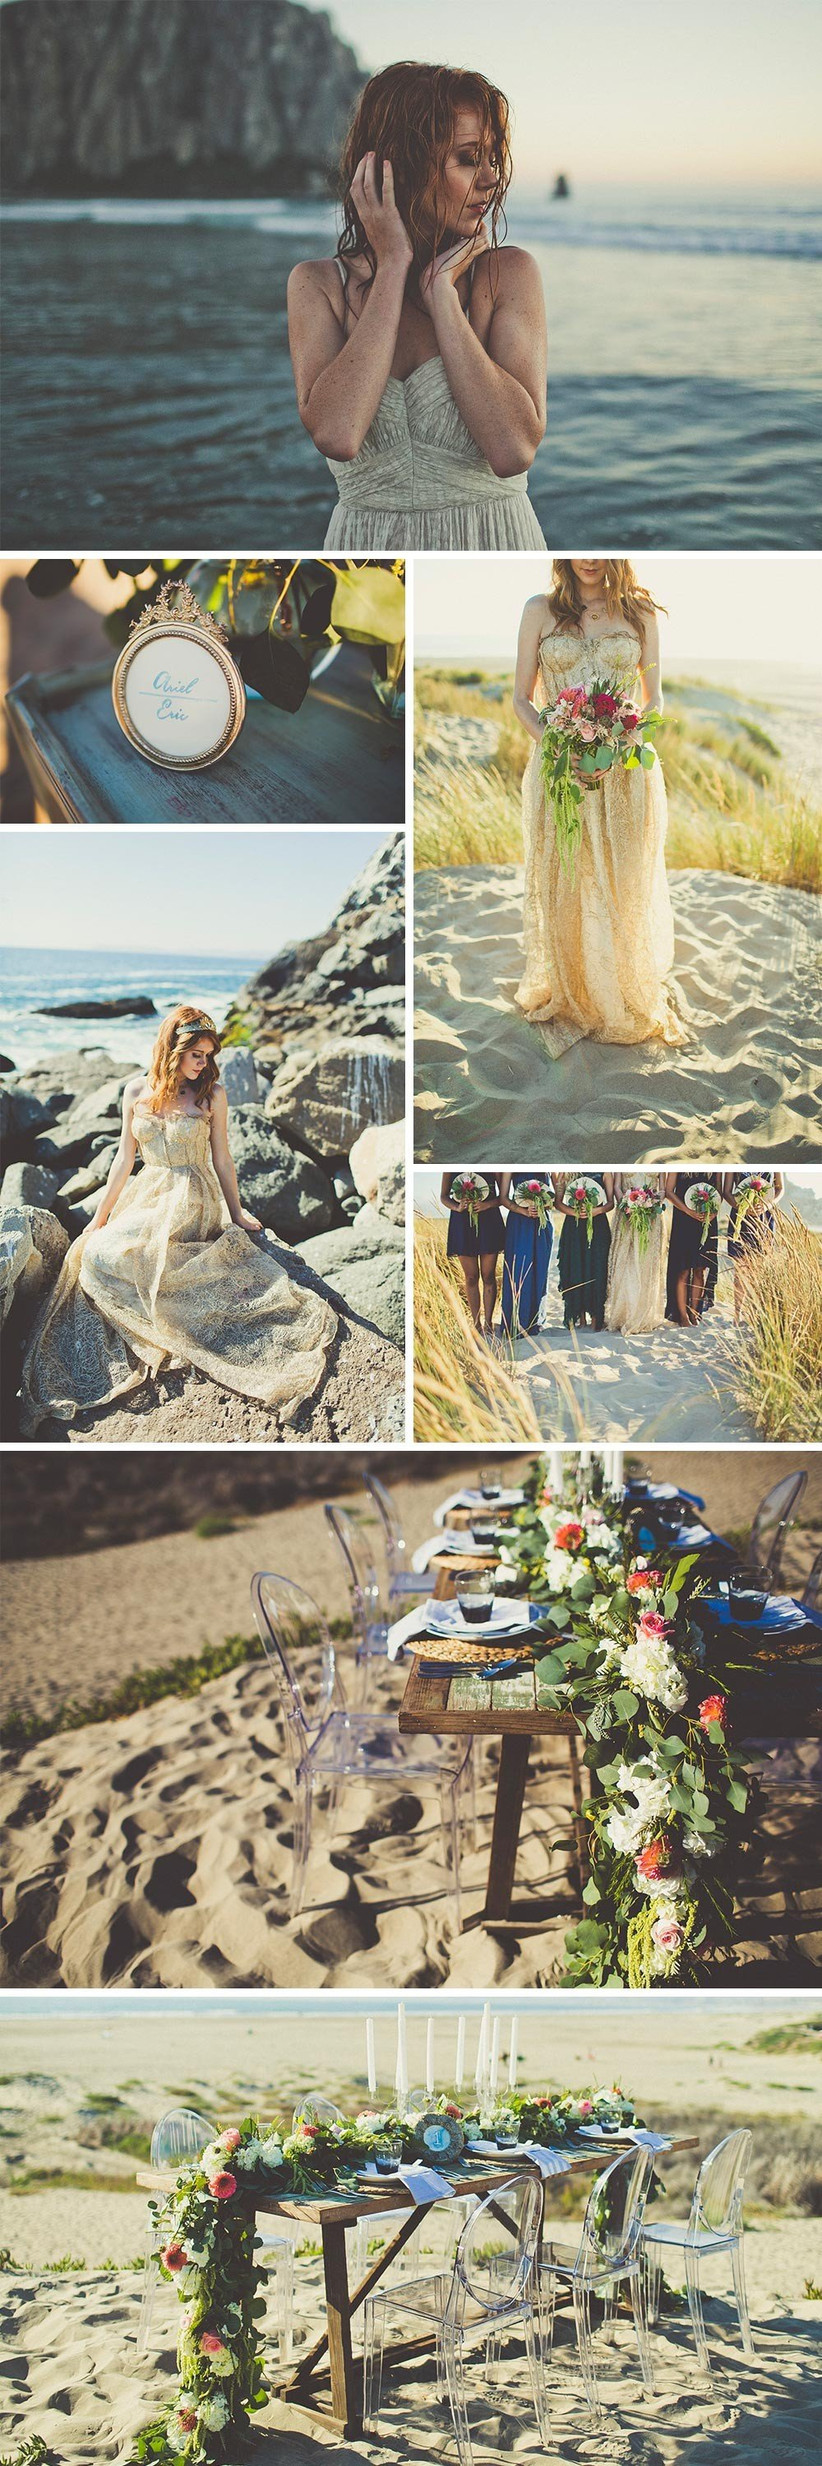 styled-shoot-with-an-unusual-little-mermaid-wedding-theme